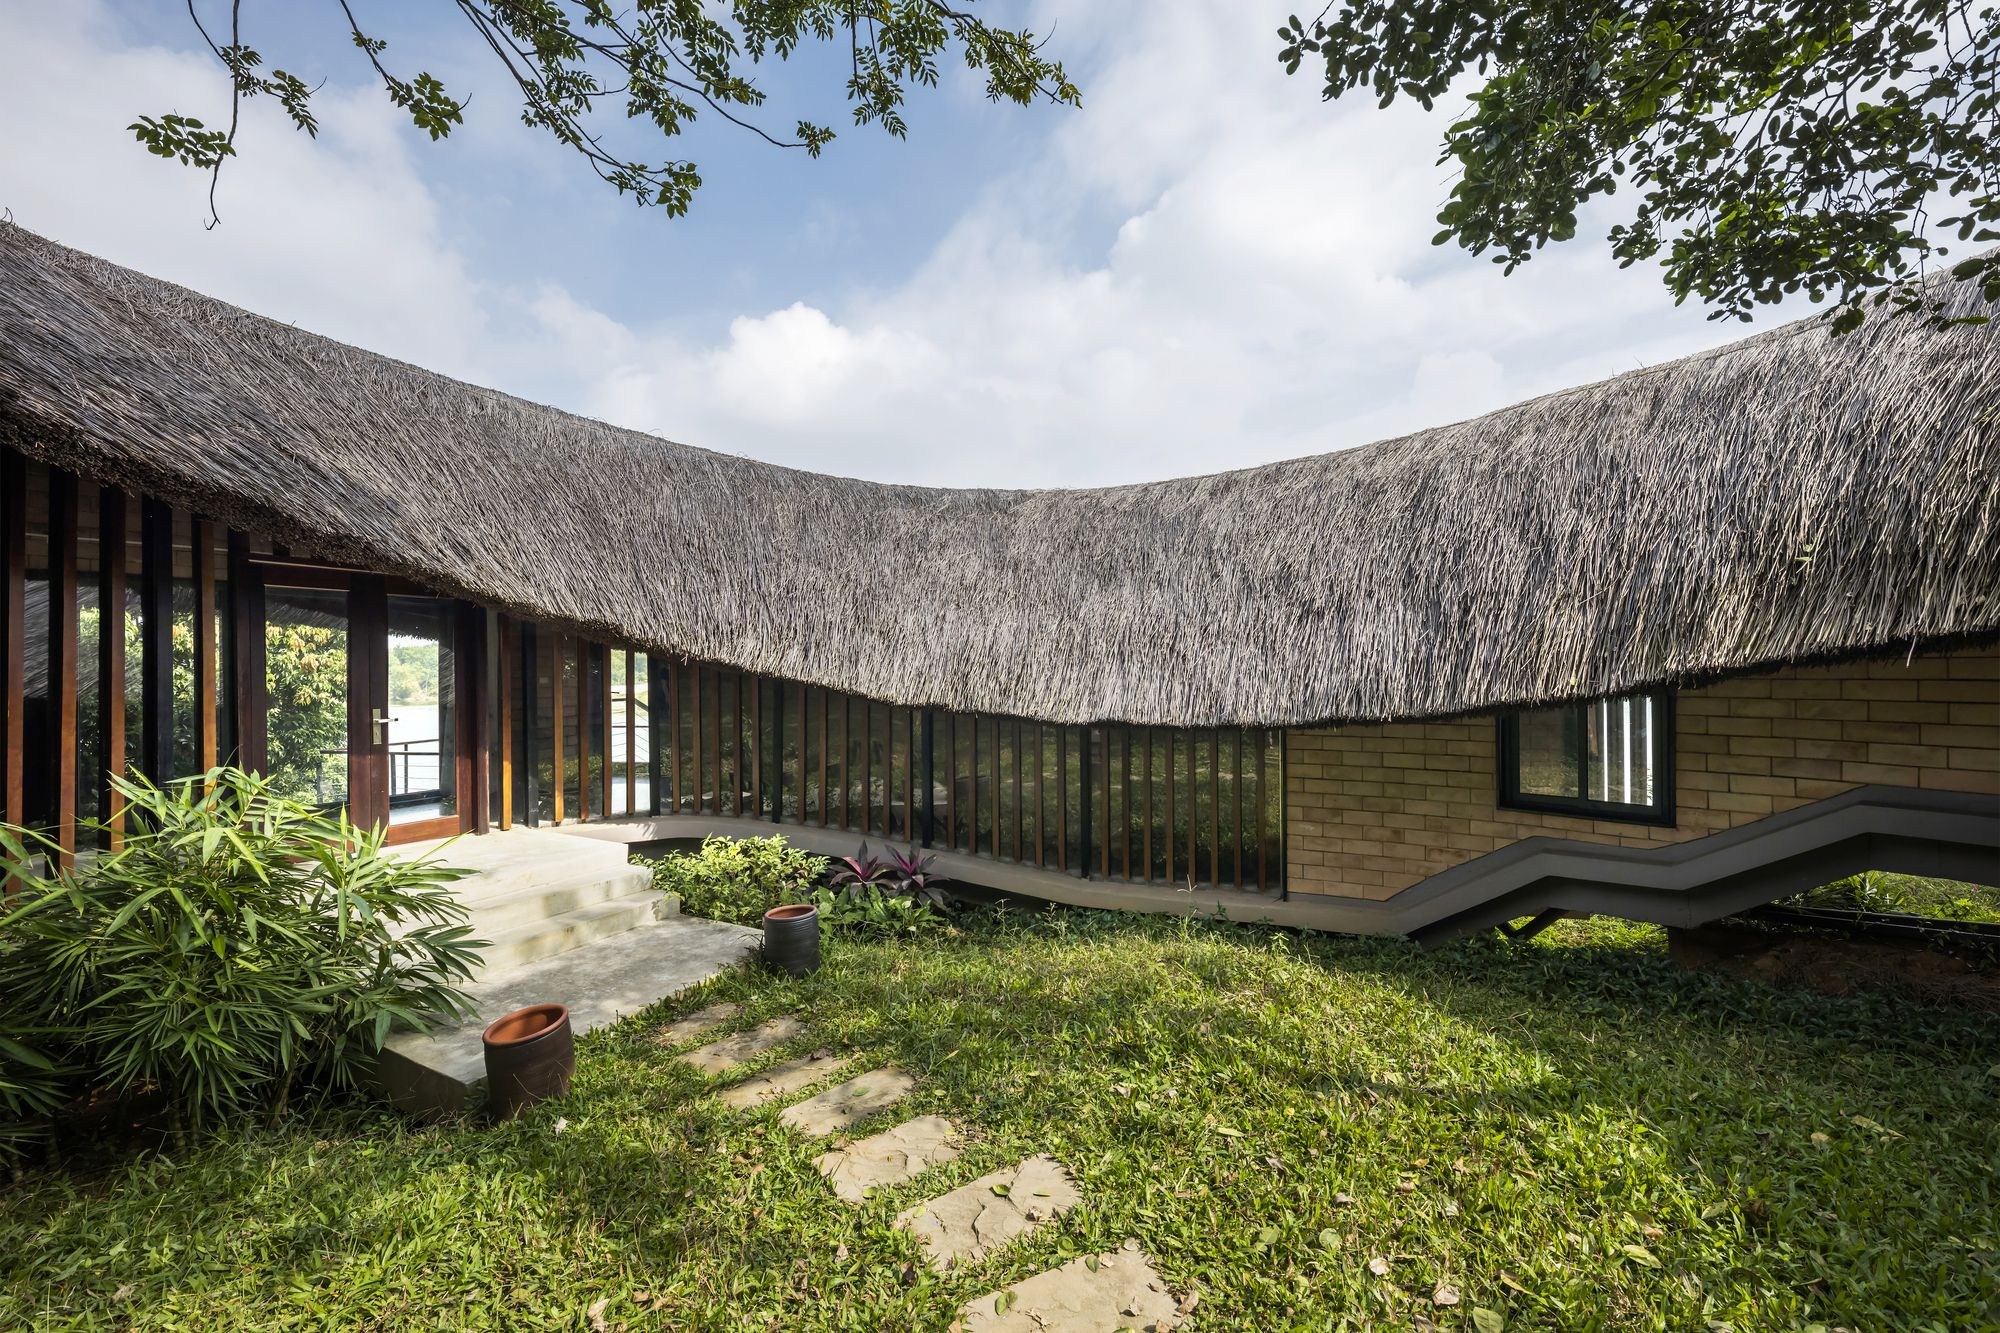 Mother S House 1 1 2 Architects In 2020 Architect Unusual Buildings Thatched Roof